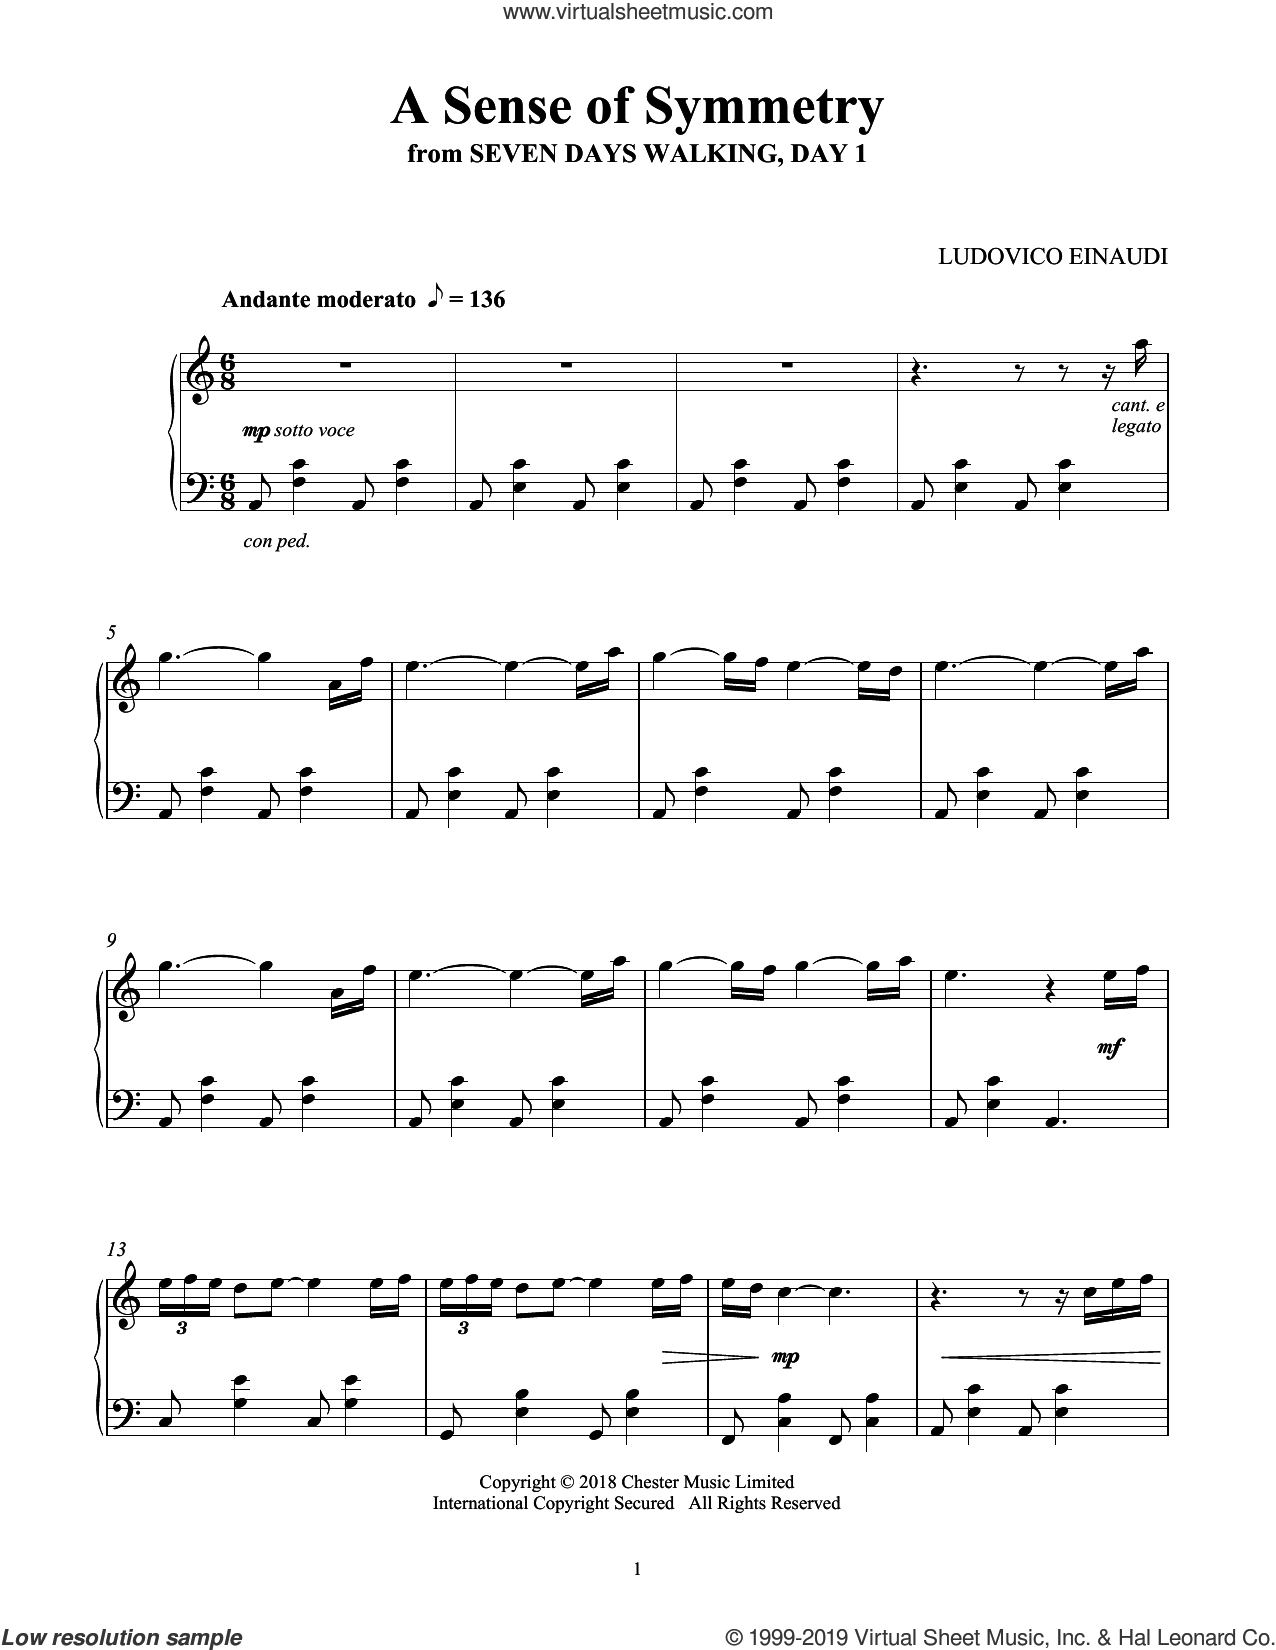 A Sense Of Symmetry (from Seven Days Walking: Day 1) sheet music for piano solo by Ludovico Einaudi, classical score, intermediate skill level